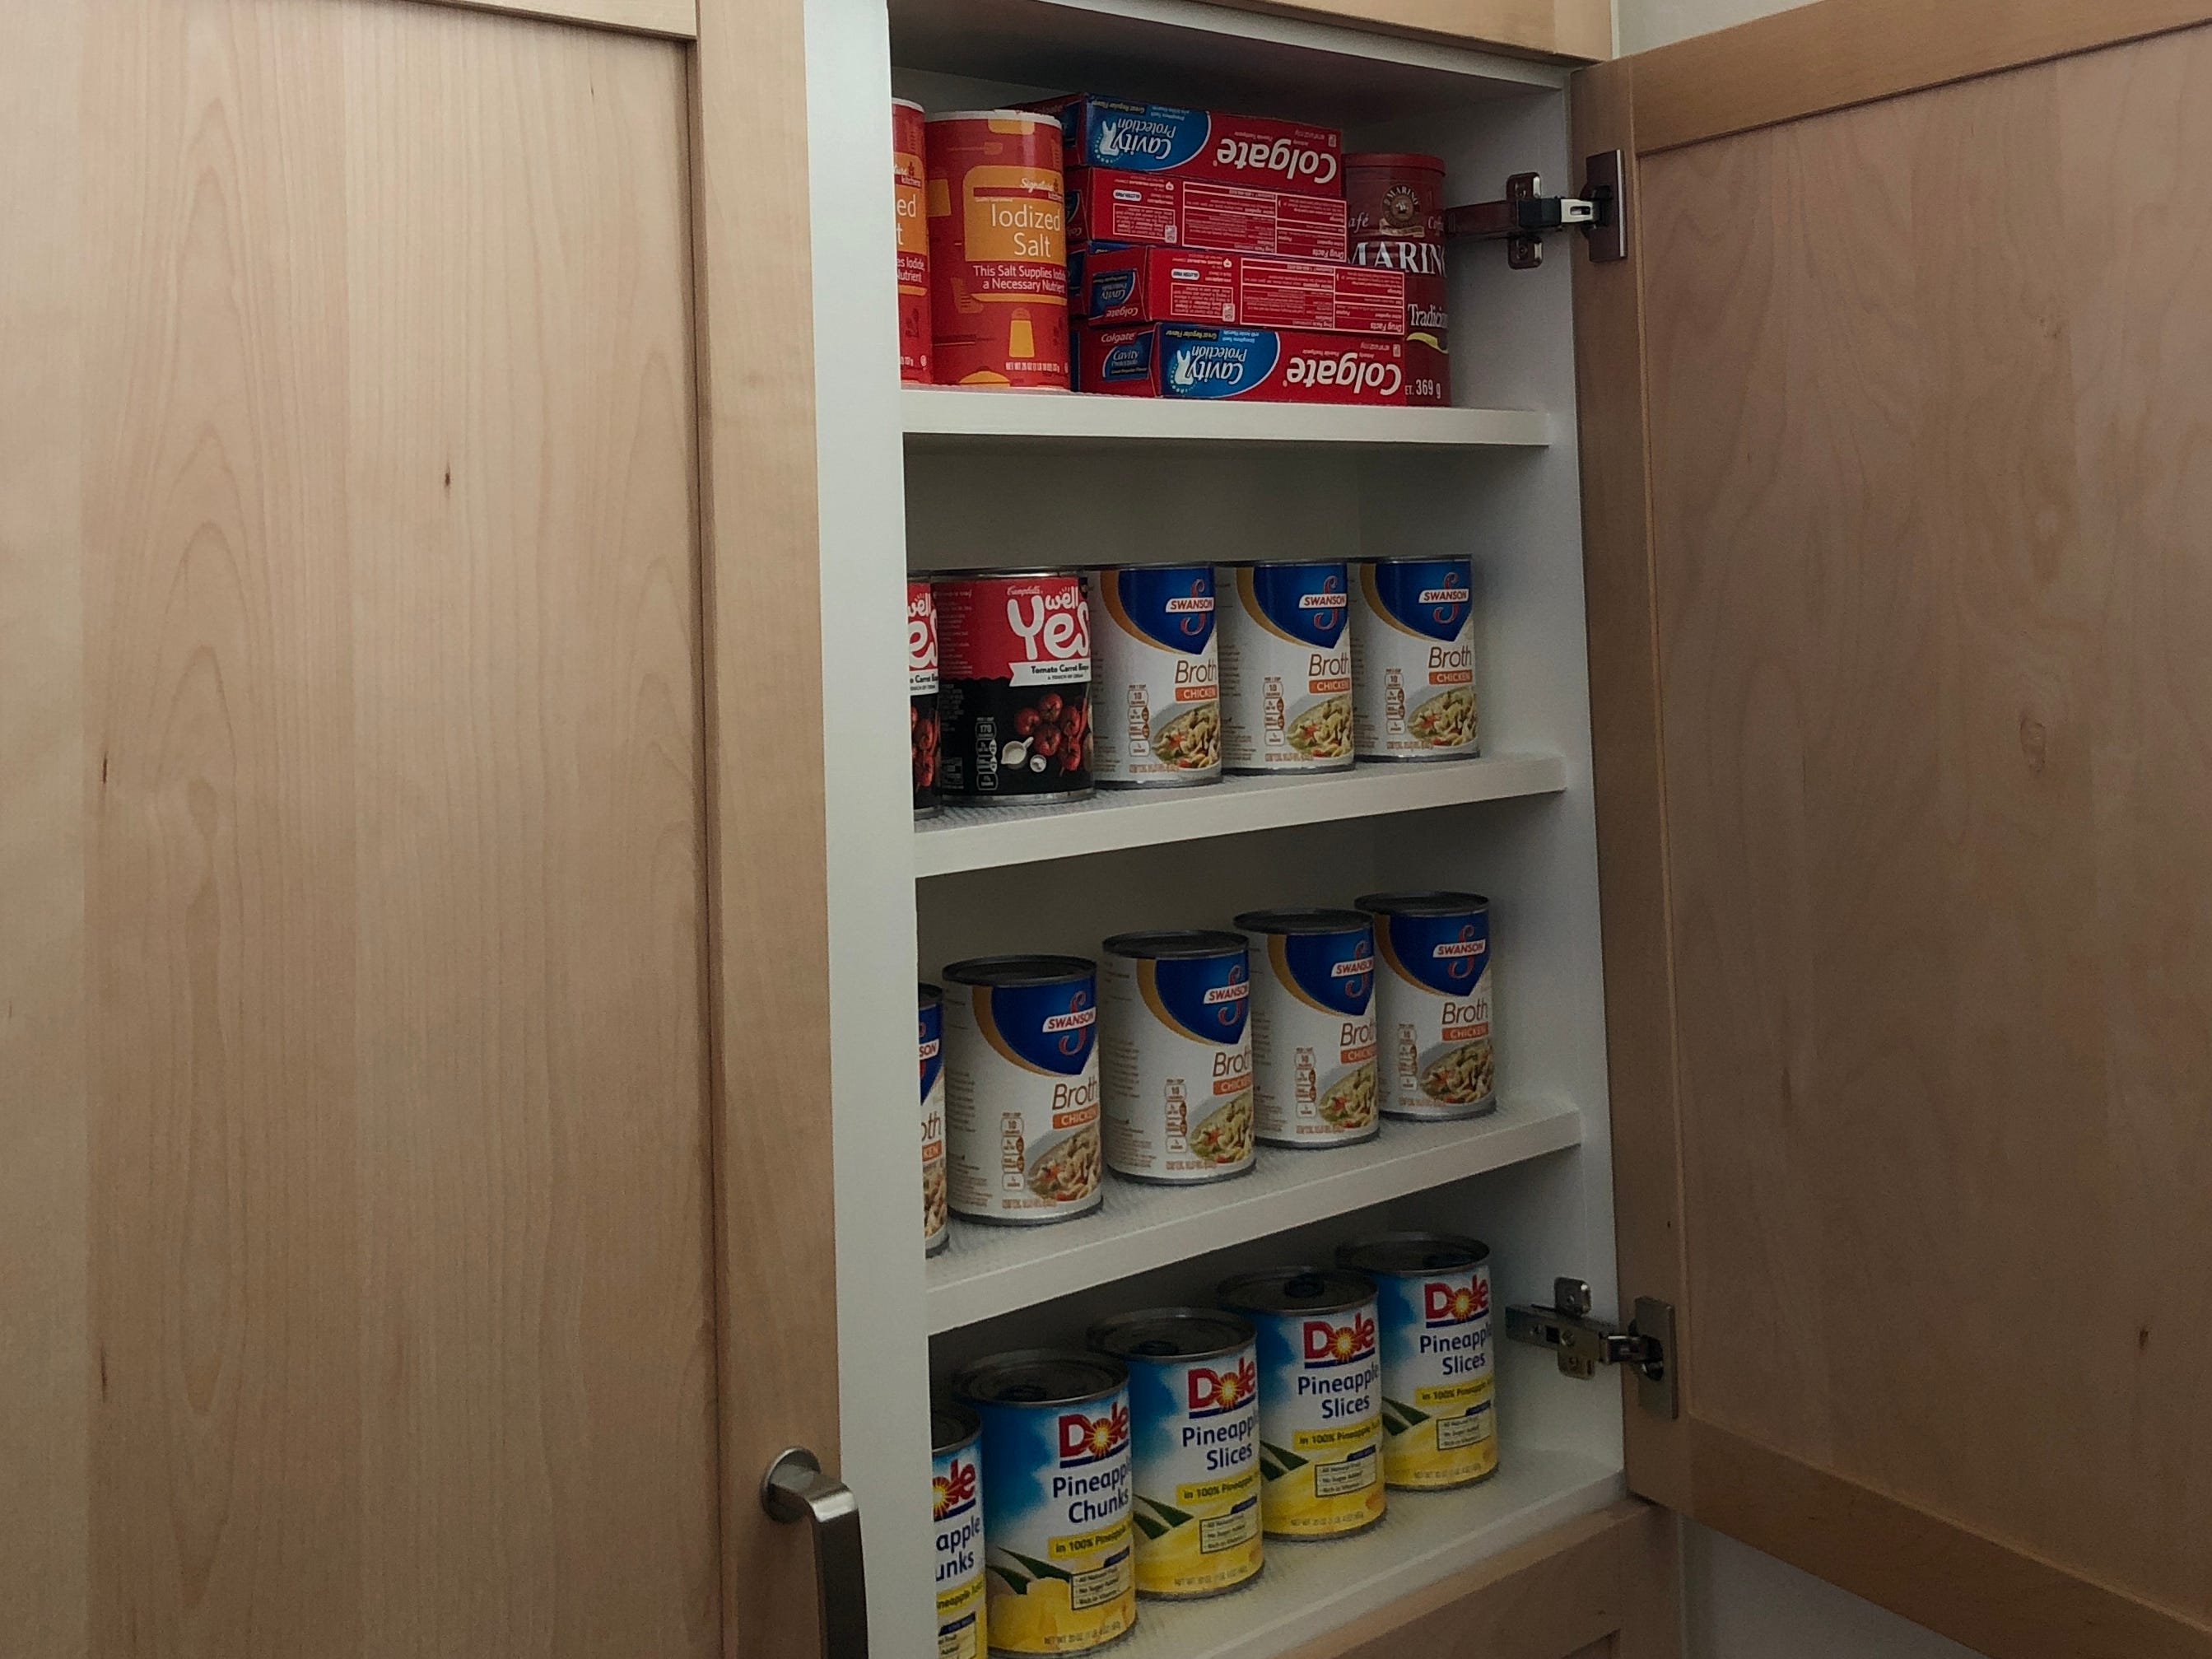 The pantry shelves make efficient use of a small, narrow space by being one-can deep.